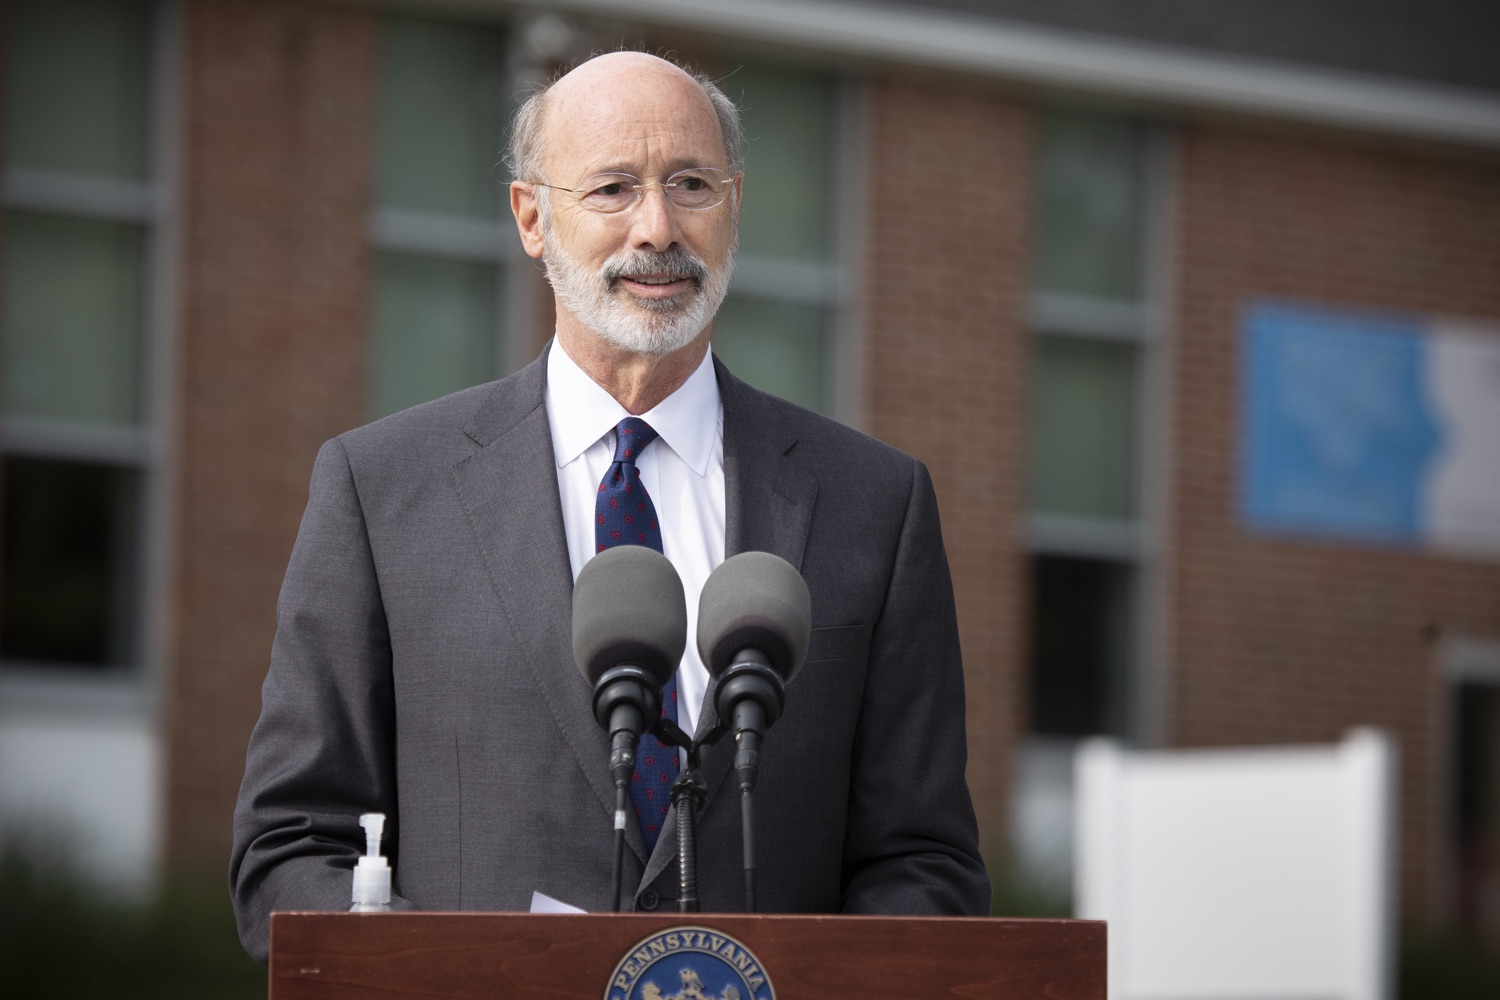 "<a href=""https://filesource.wostreaming.net/commonwealthofpa/photo/18259_gov_electionReform_dz_004.jpg"" target=""_blank"">⇣ Download Photo<br></a>Pennsylvania Governor Tom Wolf speaking to the press.  With only seven weeks left before the Nov. 3 election, Governor Tom Wolf is urging immediate legislative action to ensure voters receive their mail-in ballots early and give counties more time to process and count ballots before election day. The governor also reassured Pennsylvanians that in-person voting is safe, and all eligible votes will be counted. SEPTEMBER 14, 2020 - YORK, PA."